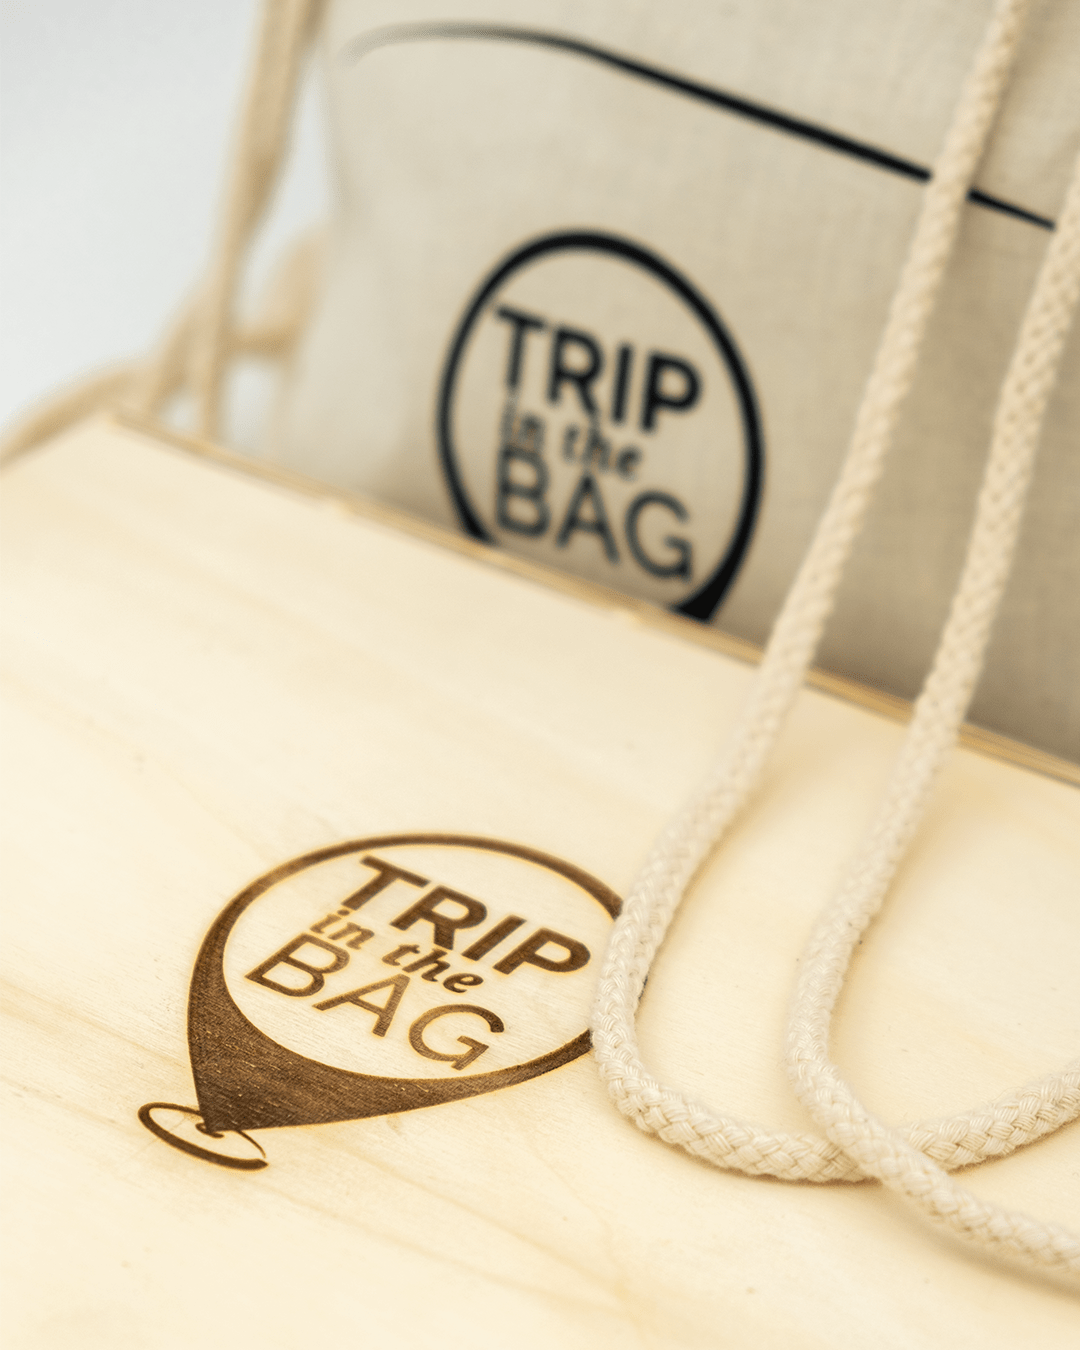 Trip in the Bag